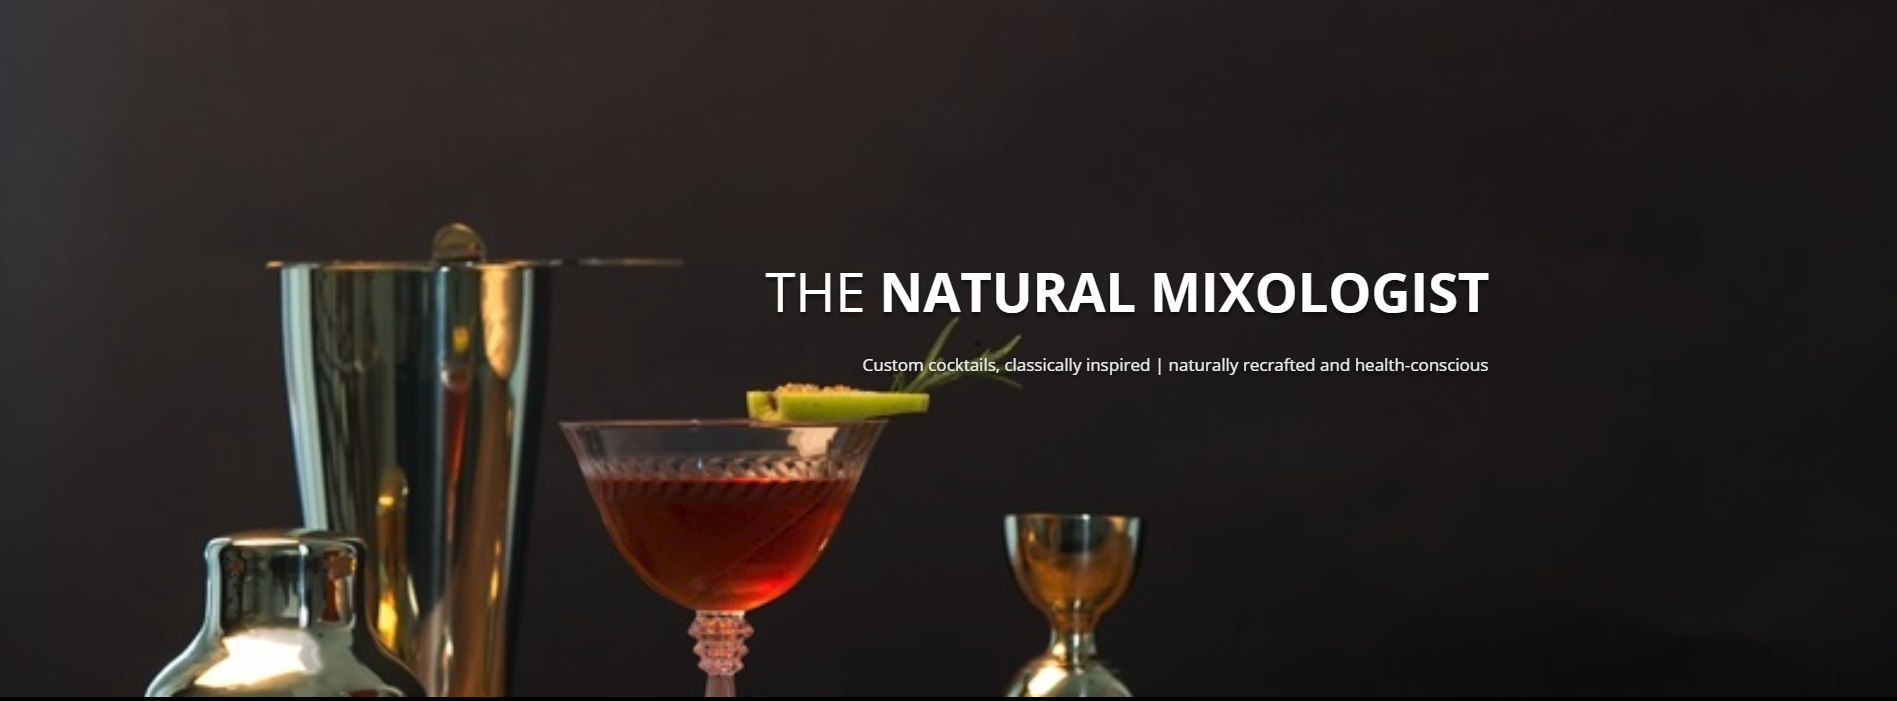 The Natural Mixologist